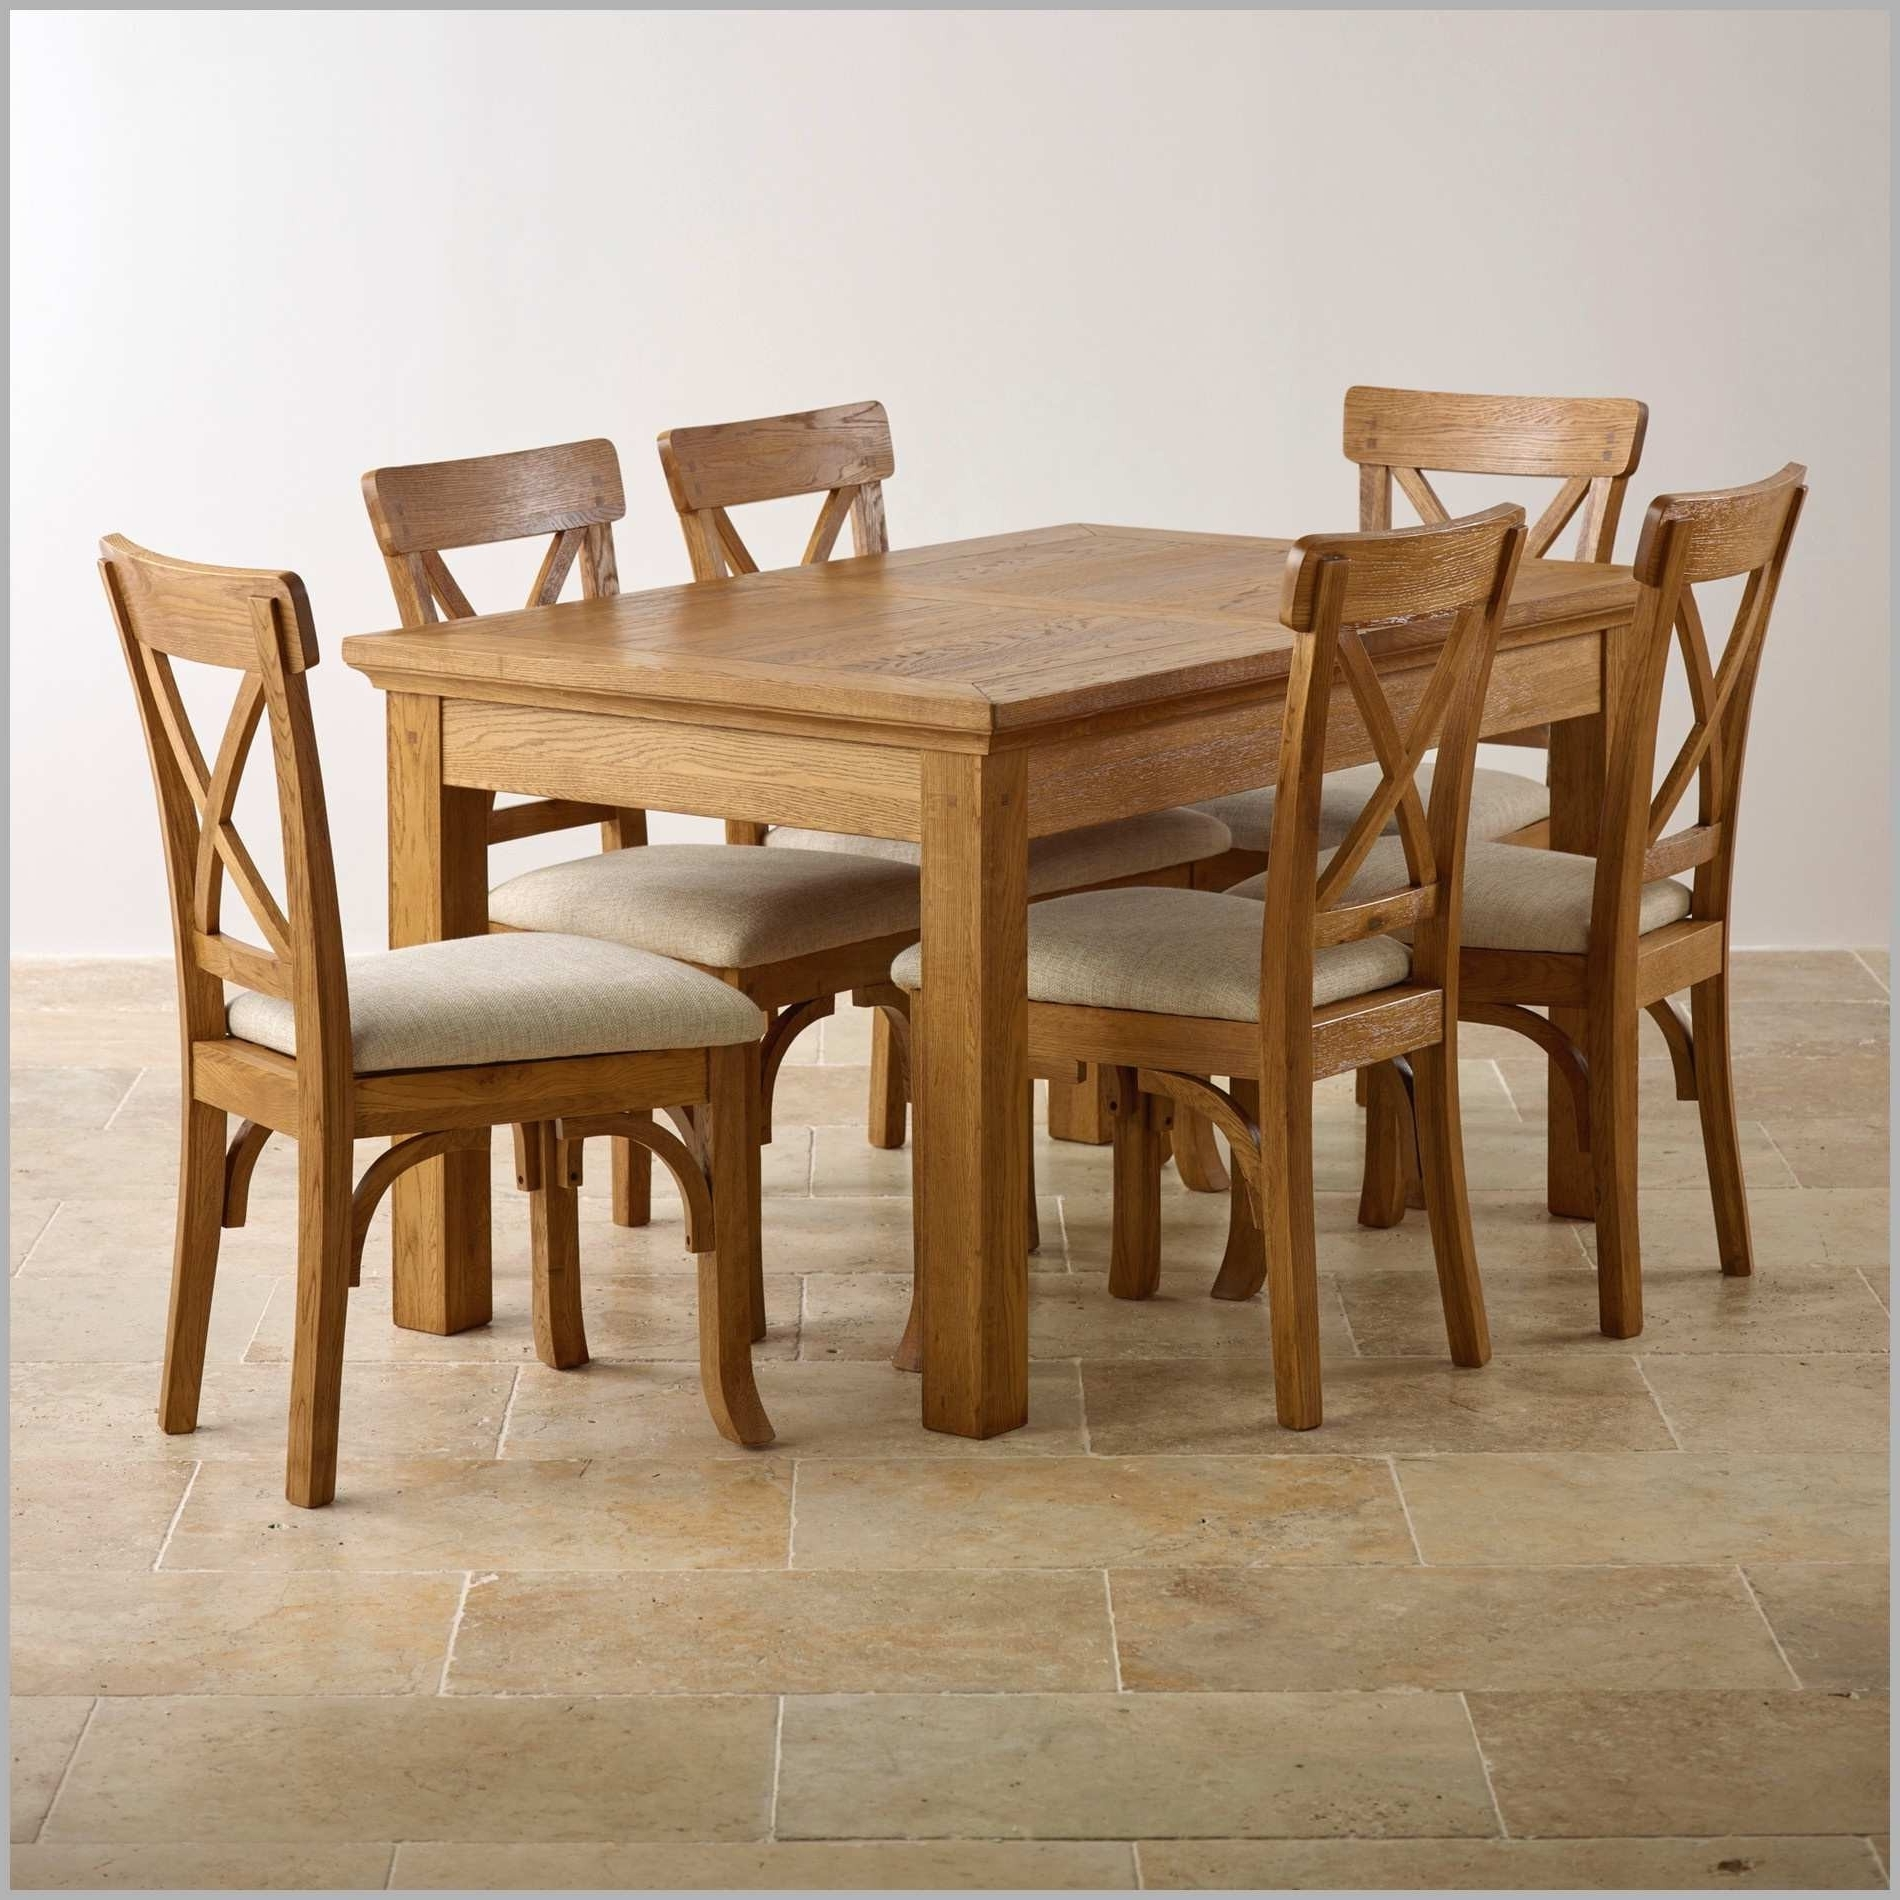 Oak 6 Seater Dining Tables Regarding Trendy The 24 Elegant Solid Oak Round Dining Table 6 Chairs (View 18 of 25)